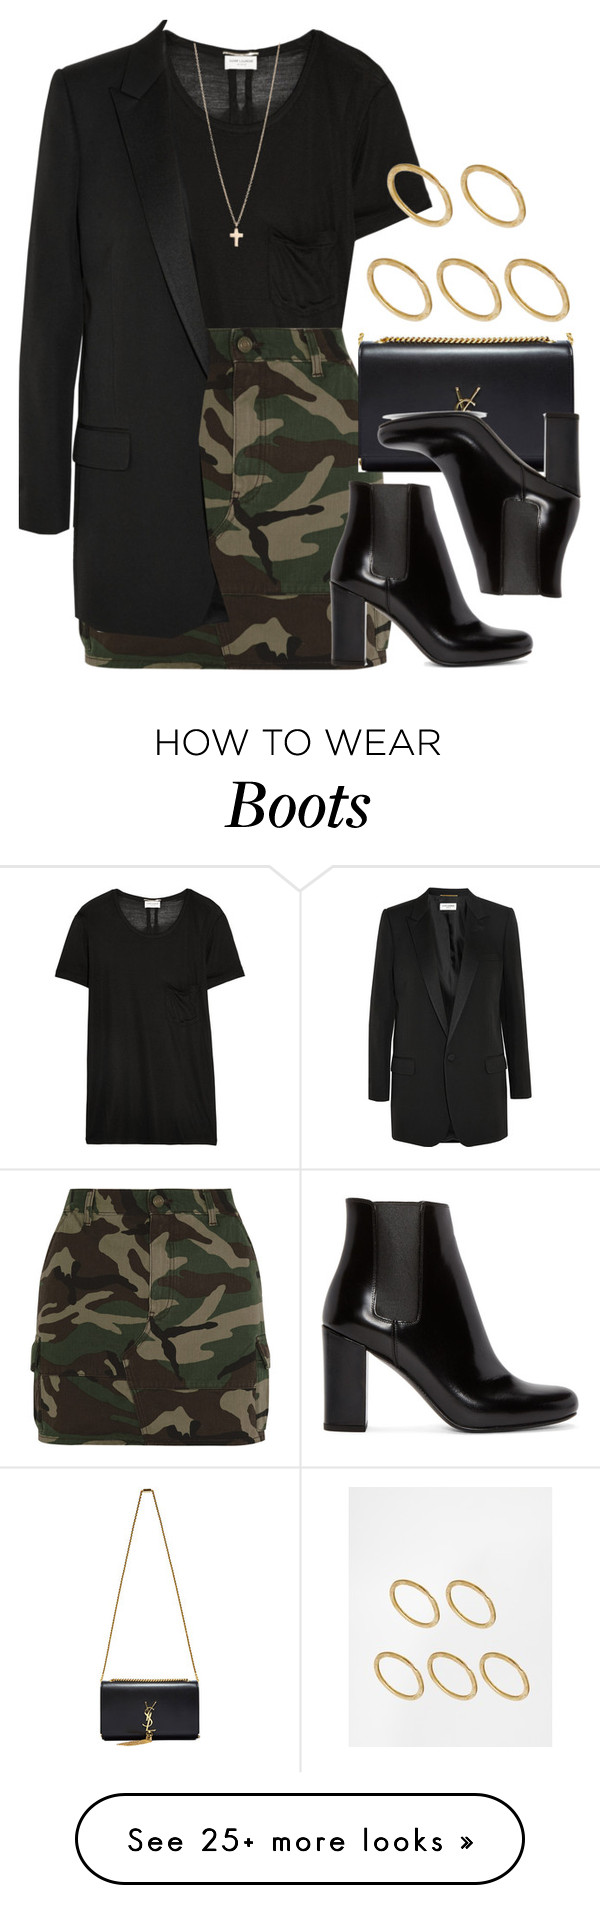 """Style #9788"" by vany-alvarado on Polyvore featuring Yves Saint Laurent, Made, Minor Obsessions, women's clothing, women, female, woman, misses and juniors"